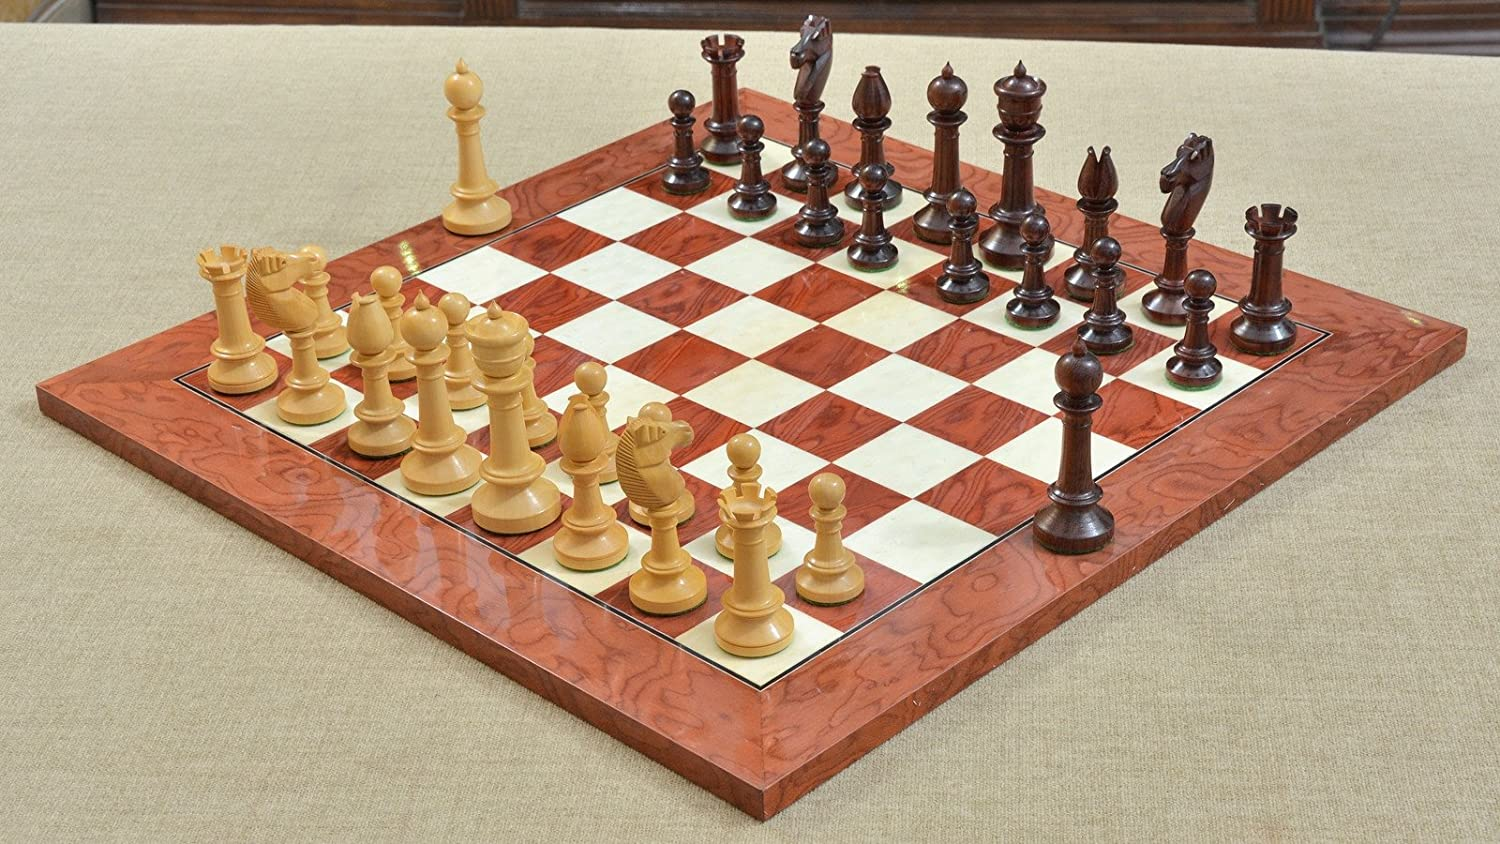 【スーパーセール】 Combo Upright of B01MDPM3CH Repro Old Antique Edinburgh Rose Upright Chess Pieces in Bud Rose/ Box Wood & Red Ash Burl Maple Wooden Chess Board B01MDPM3CH, 亀や和草:4096ee27 --- cygne.mdxdemo.com